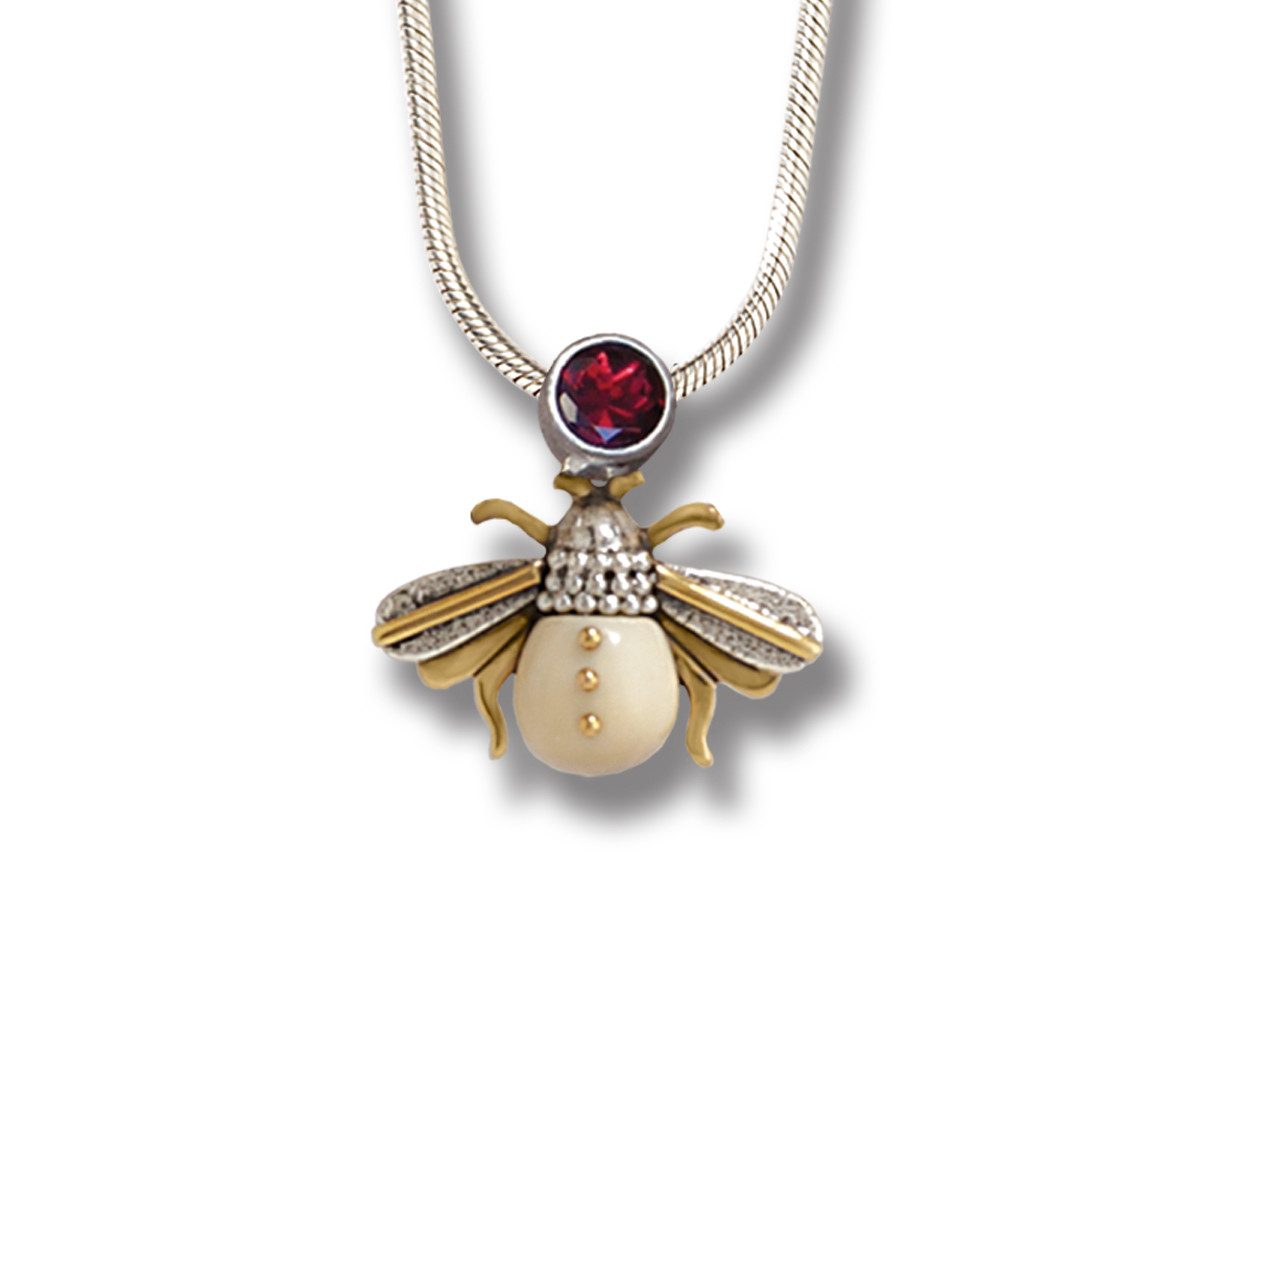 fd29b683c Fossilized Walrus Tusk Silver Bee Pendant Necklace, 14kt Gold Fill and  Garnet - Bee